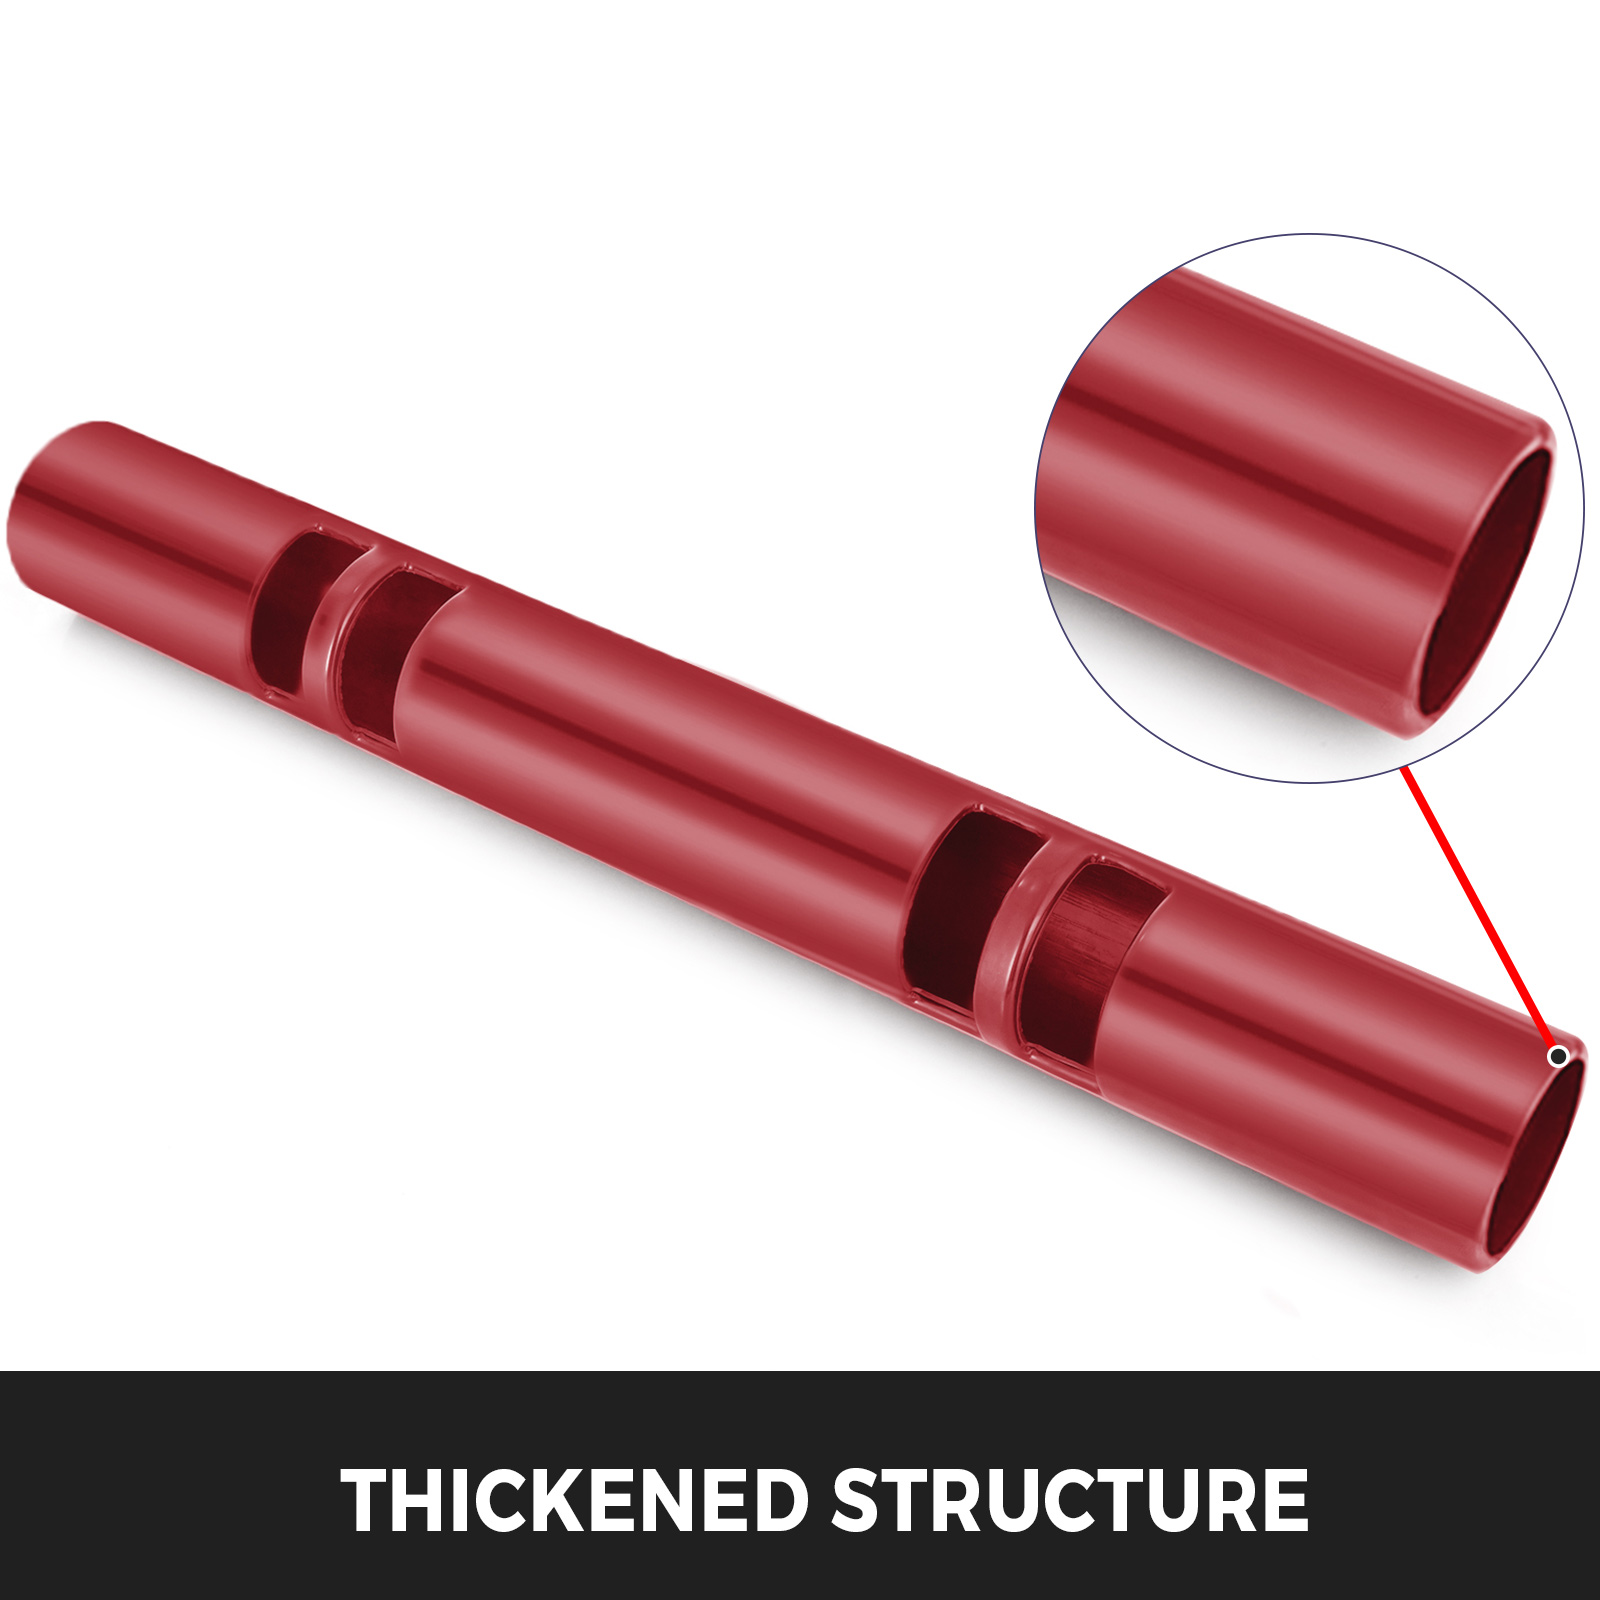 Vipr-Fitpro-Fitness-Tube-Loaded-Movement-Training-weightlifting-4-6-8-10-12-Kg thumbnail 75